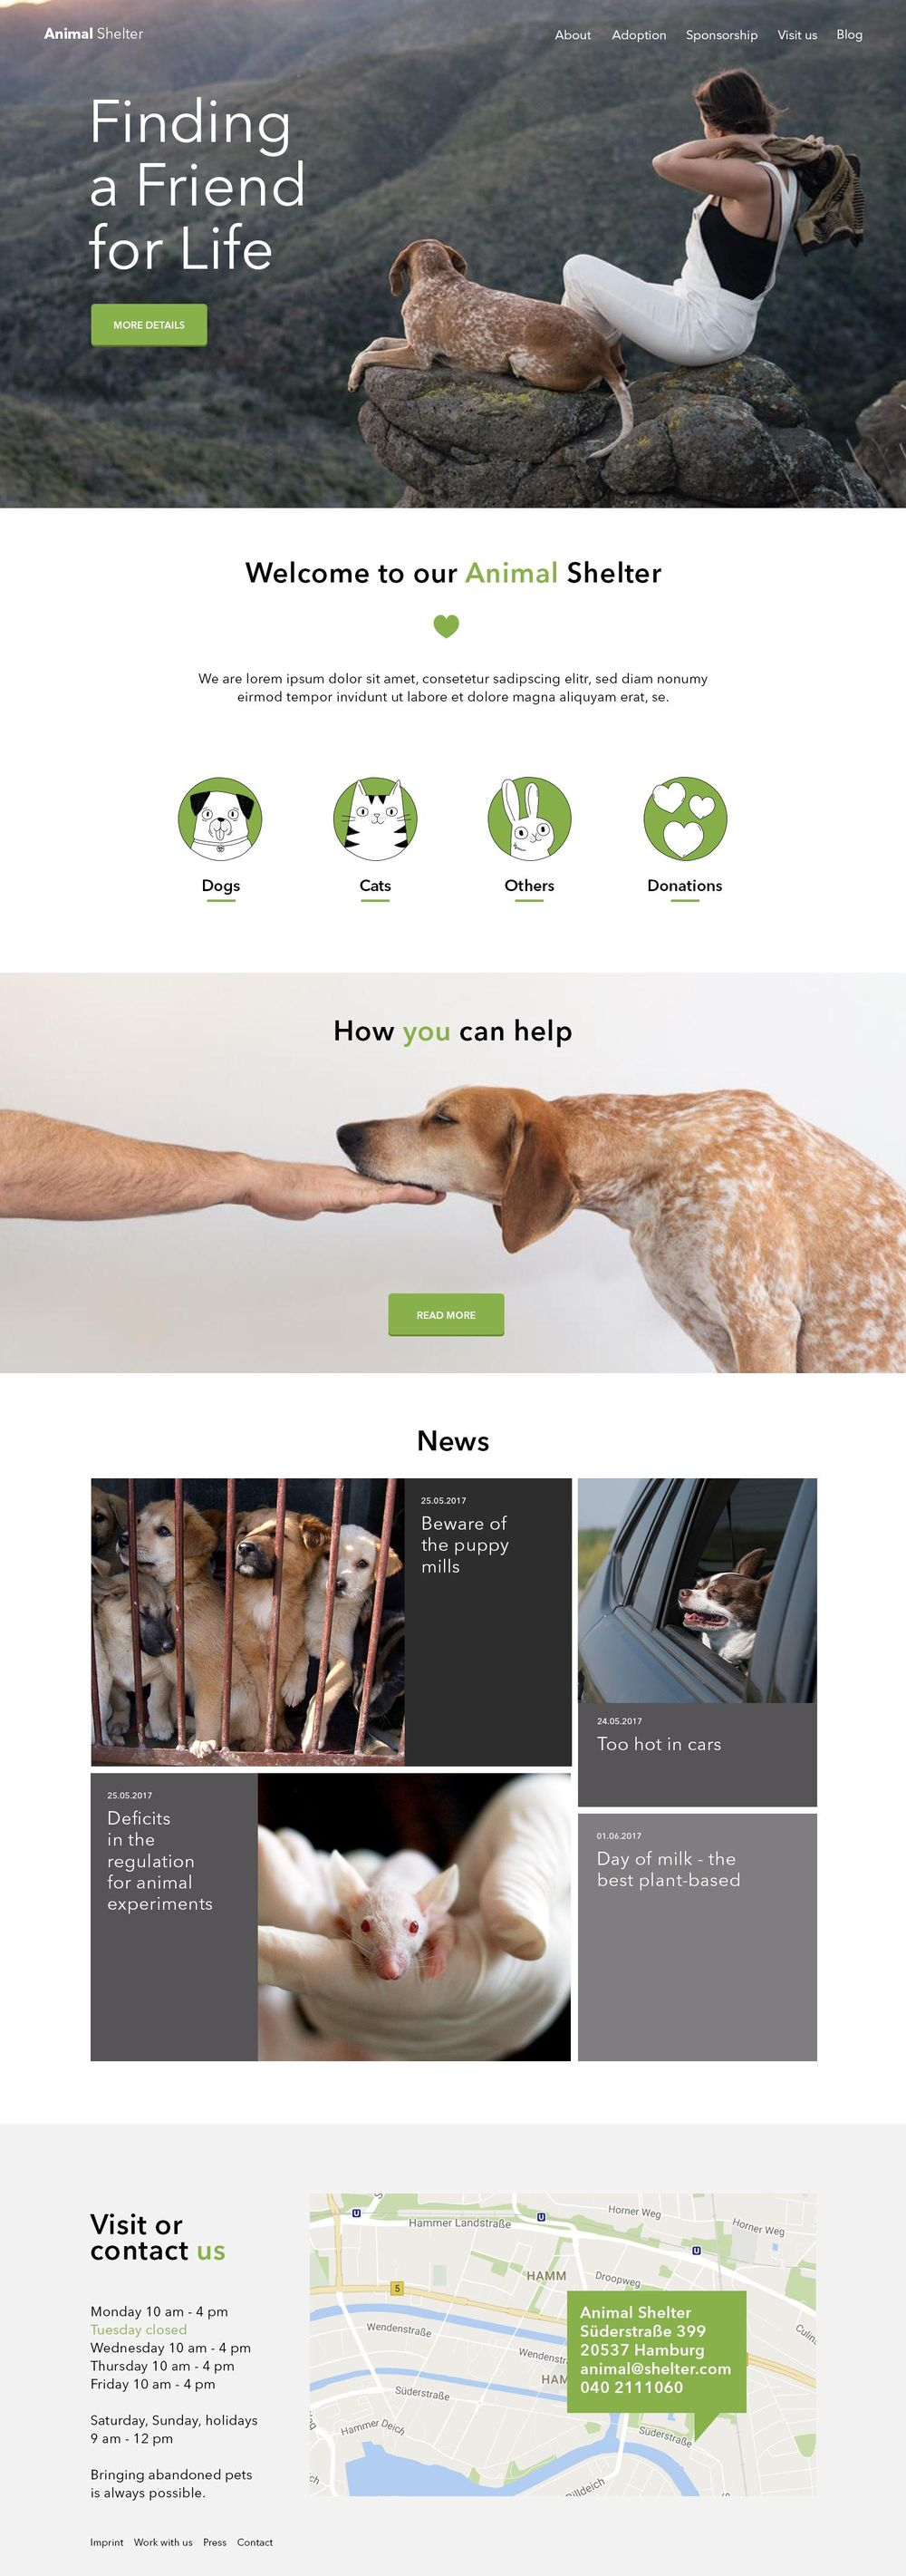 Animal Shelter - image 1 - student project